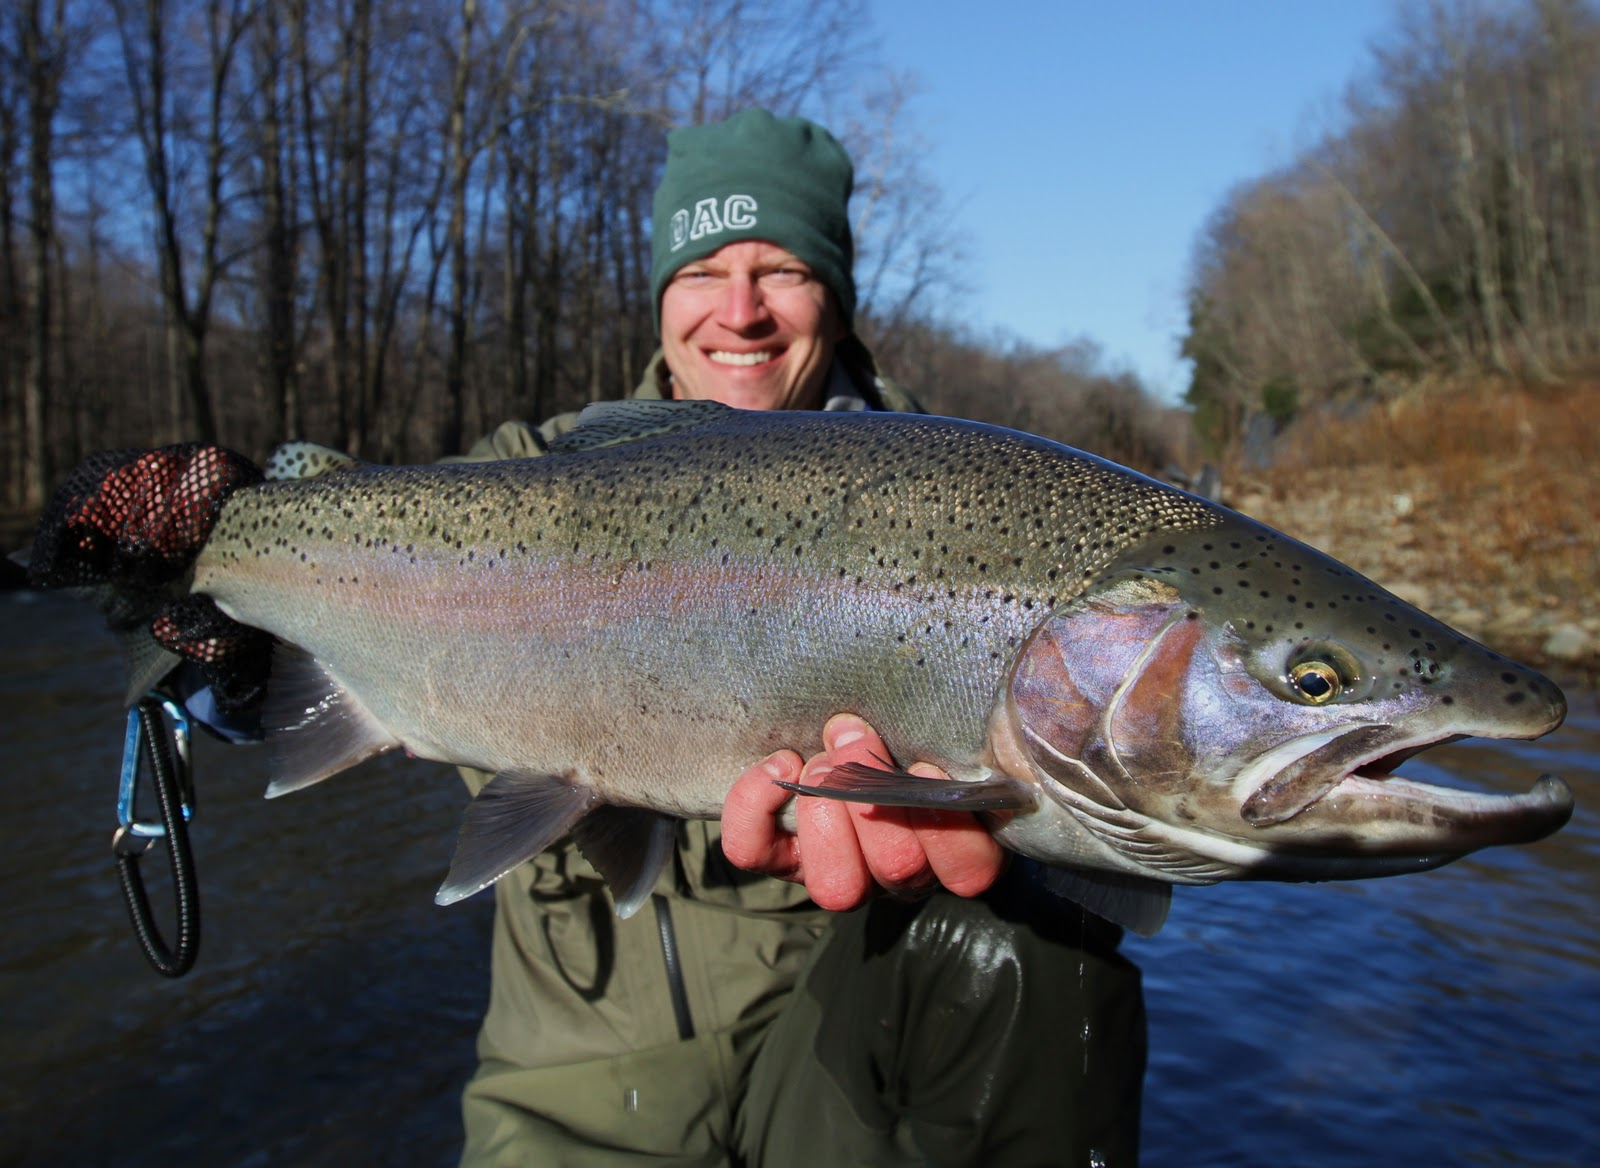 Steelhead alley outfitters lake erie fly fishing guide for Fish steelhead alley